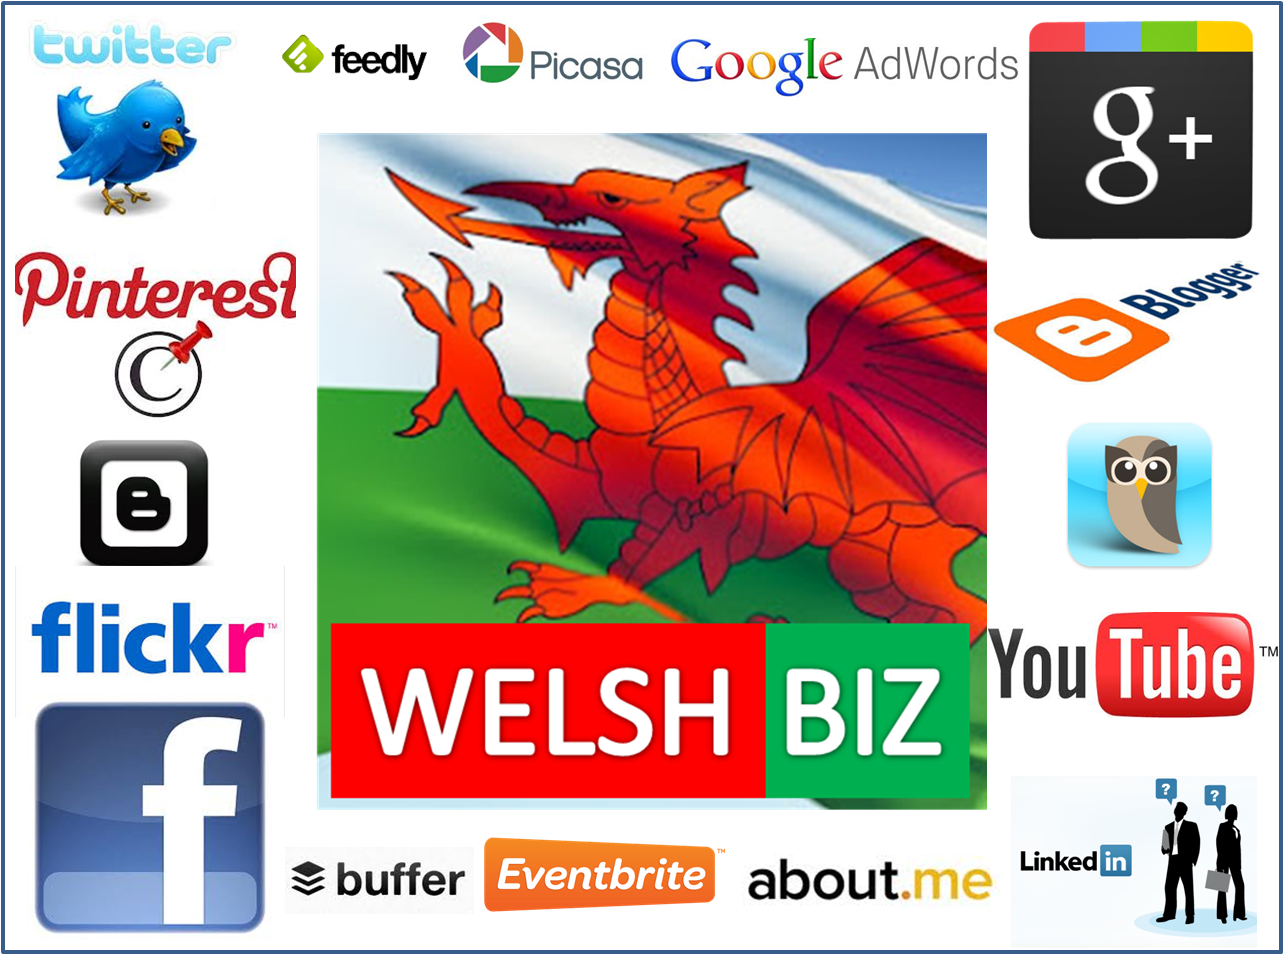 Welsh Business News, Events, Advice & Services